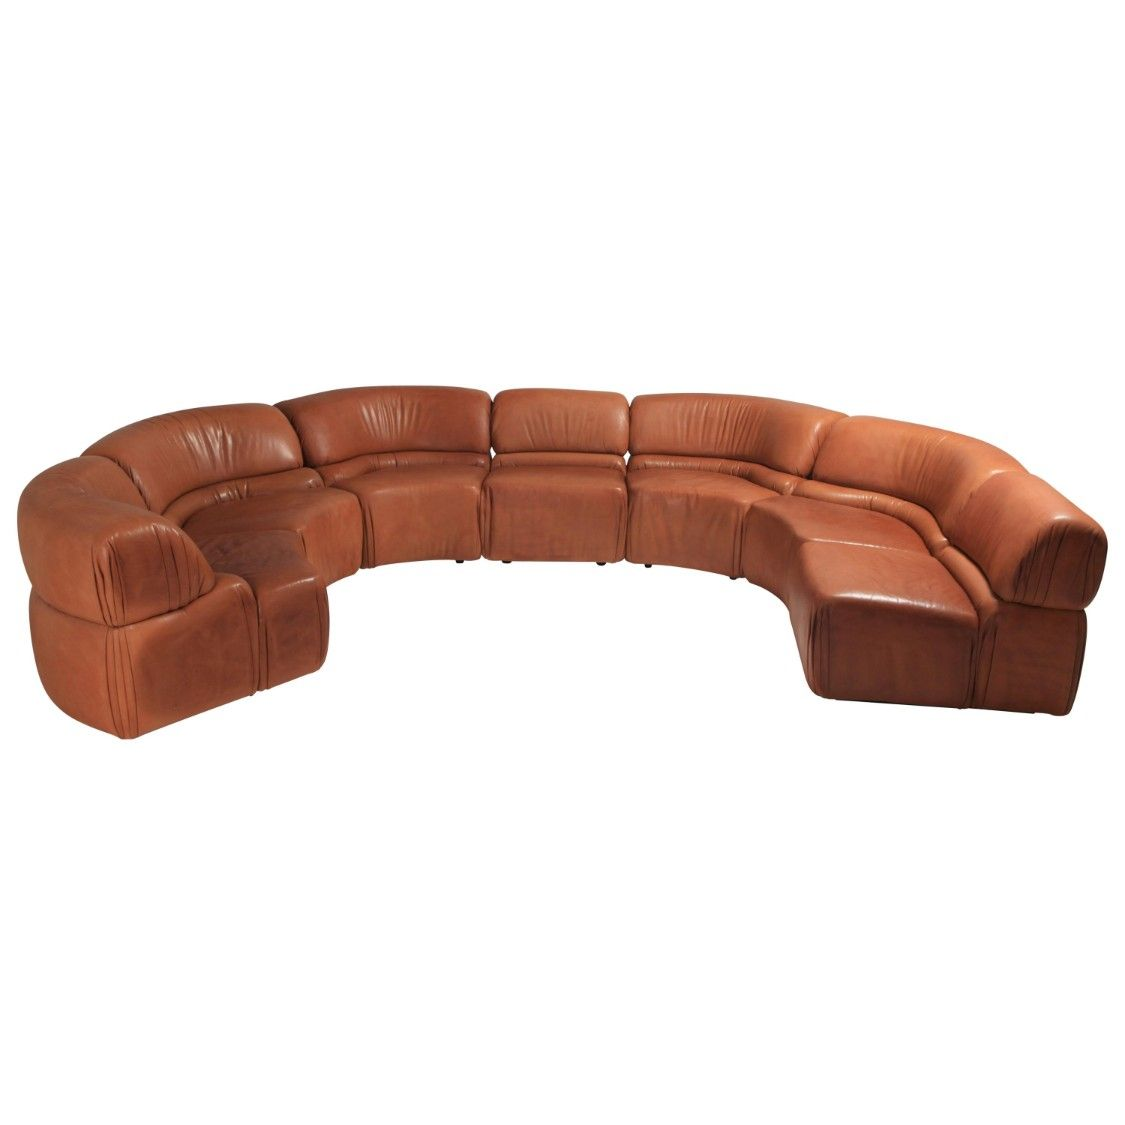 Sectional Cognac Leather Sofa Cosmos By De Sede Switzerland